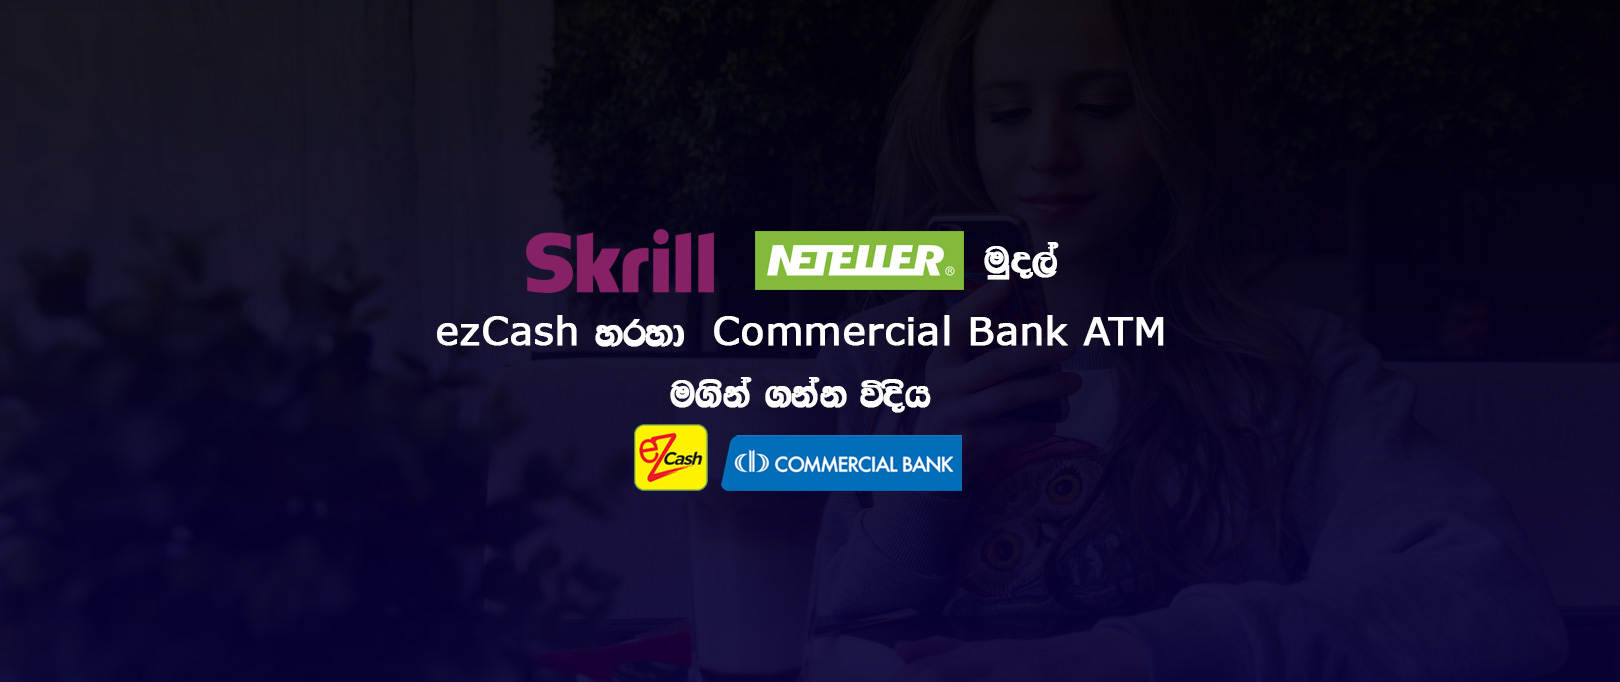 skrill-and-neteller-ezcash-to-commercial-bank-atm-withdrawal-in-sinhala